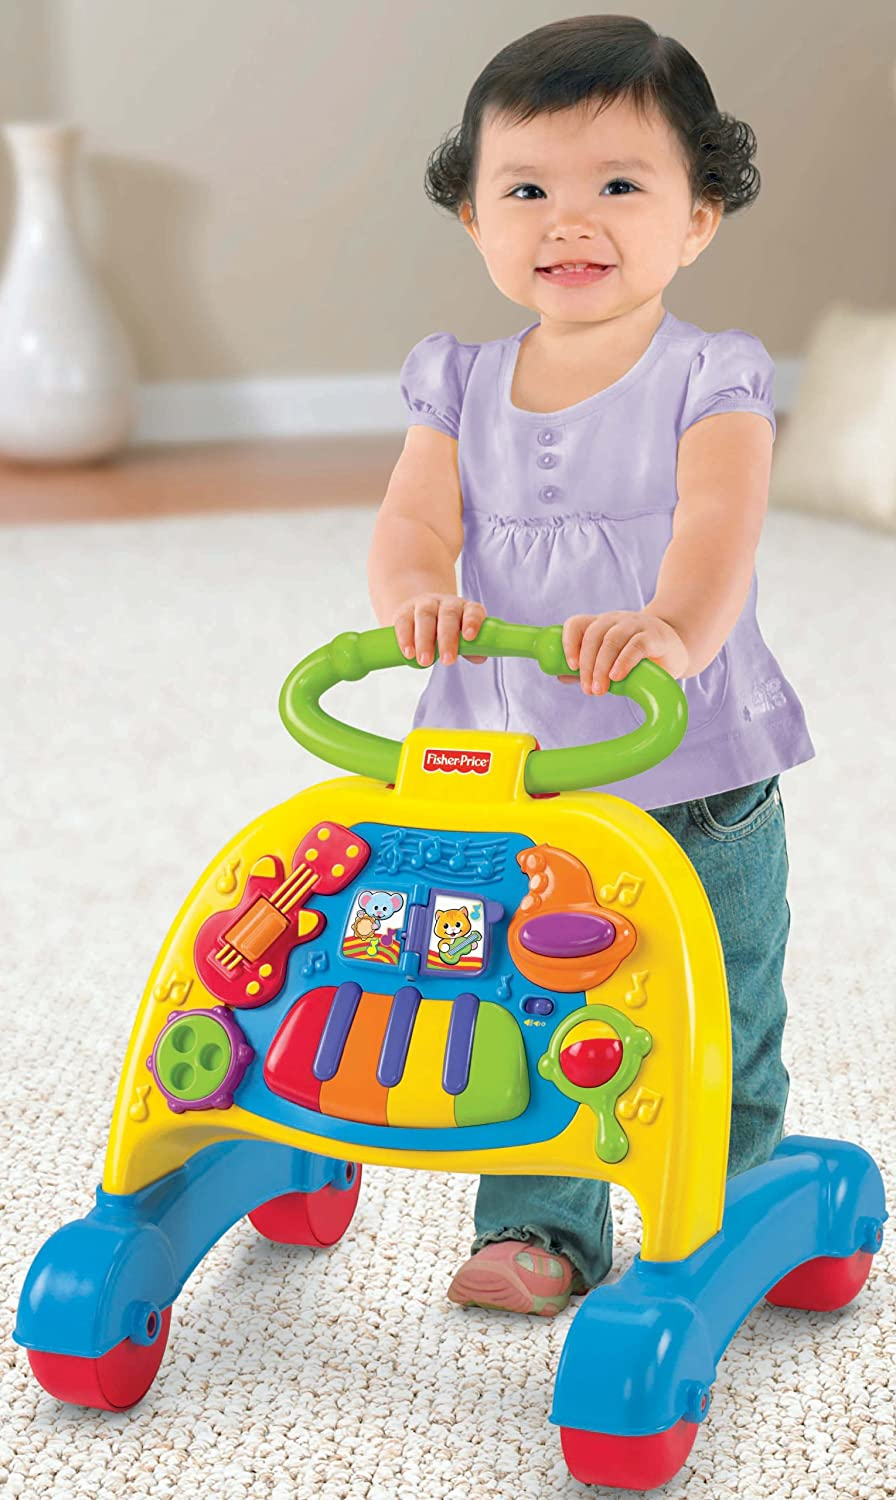 Top 4 Baby Learns To Walk Toys Or Baby Activity Walker